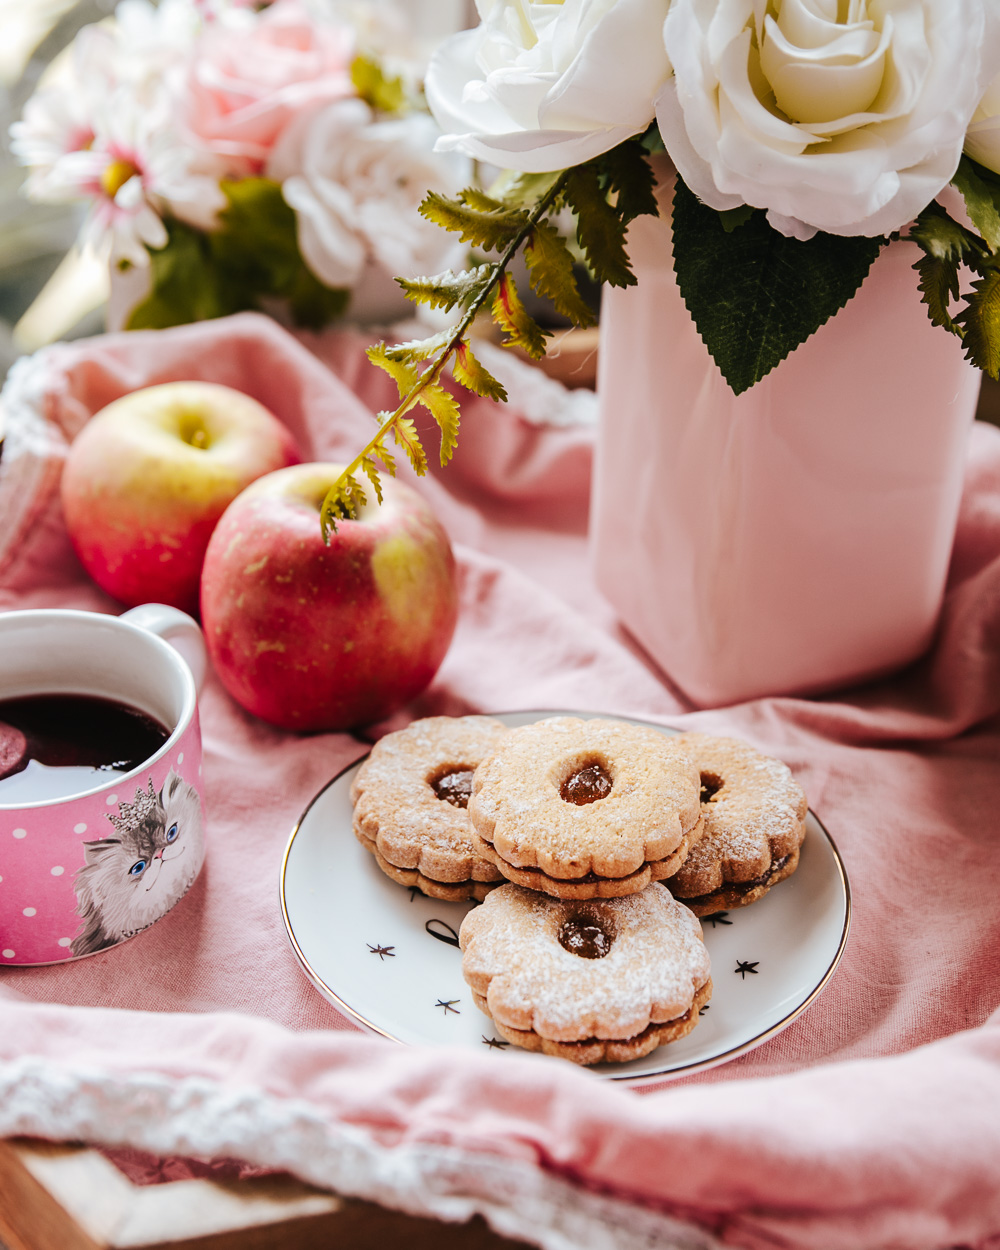 The Healthy Apple Sandwich Cookies that are lower in calories, fat and sugar than a usual cookie recipe, but they're just as yummy, crunchy and flavorful!